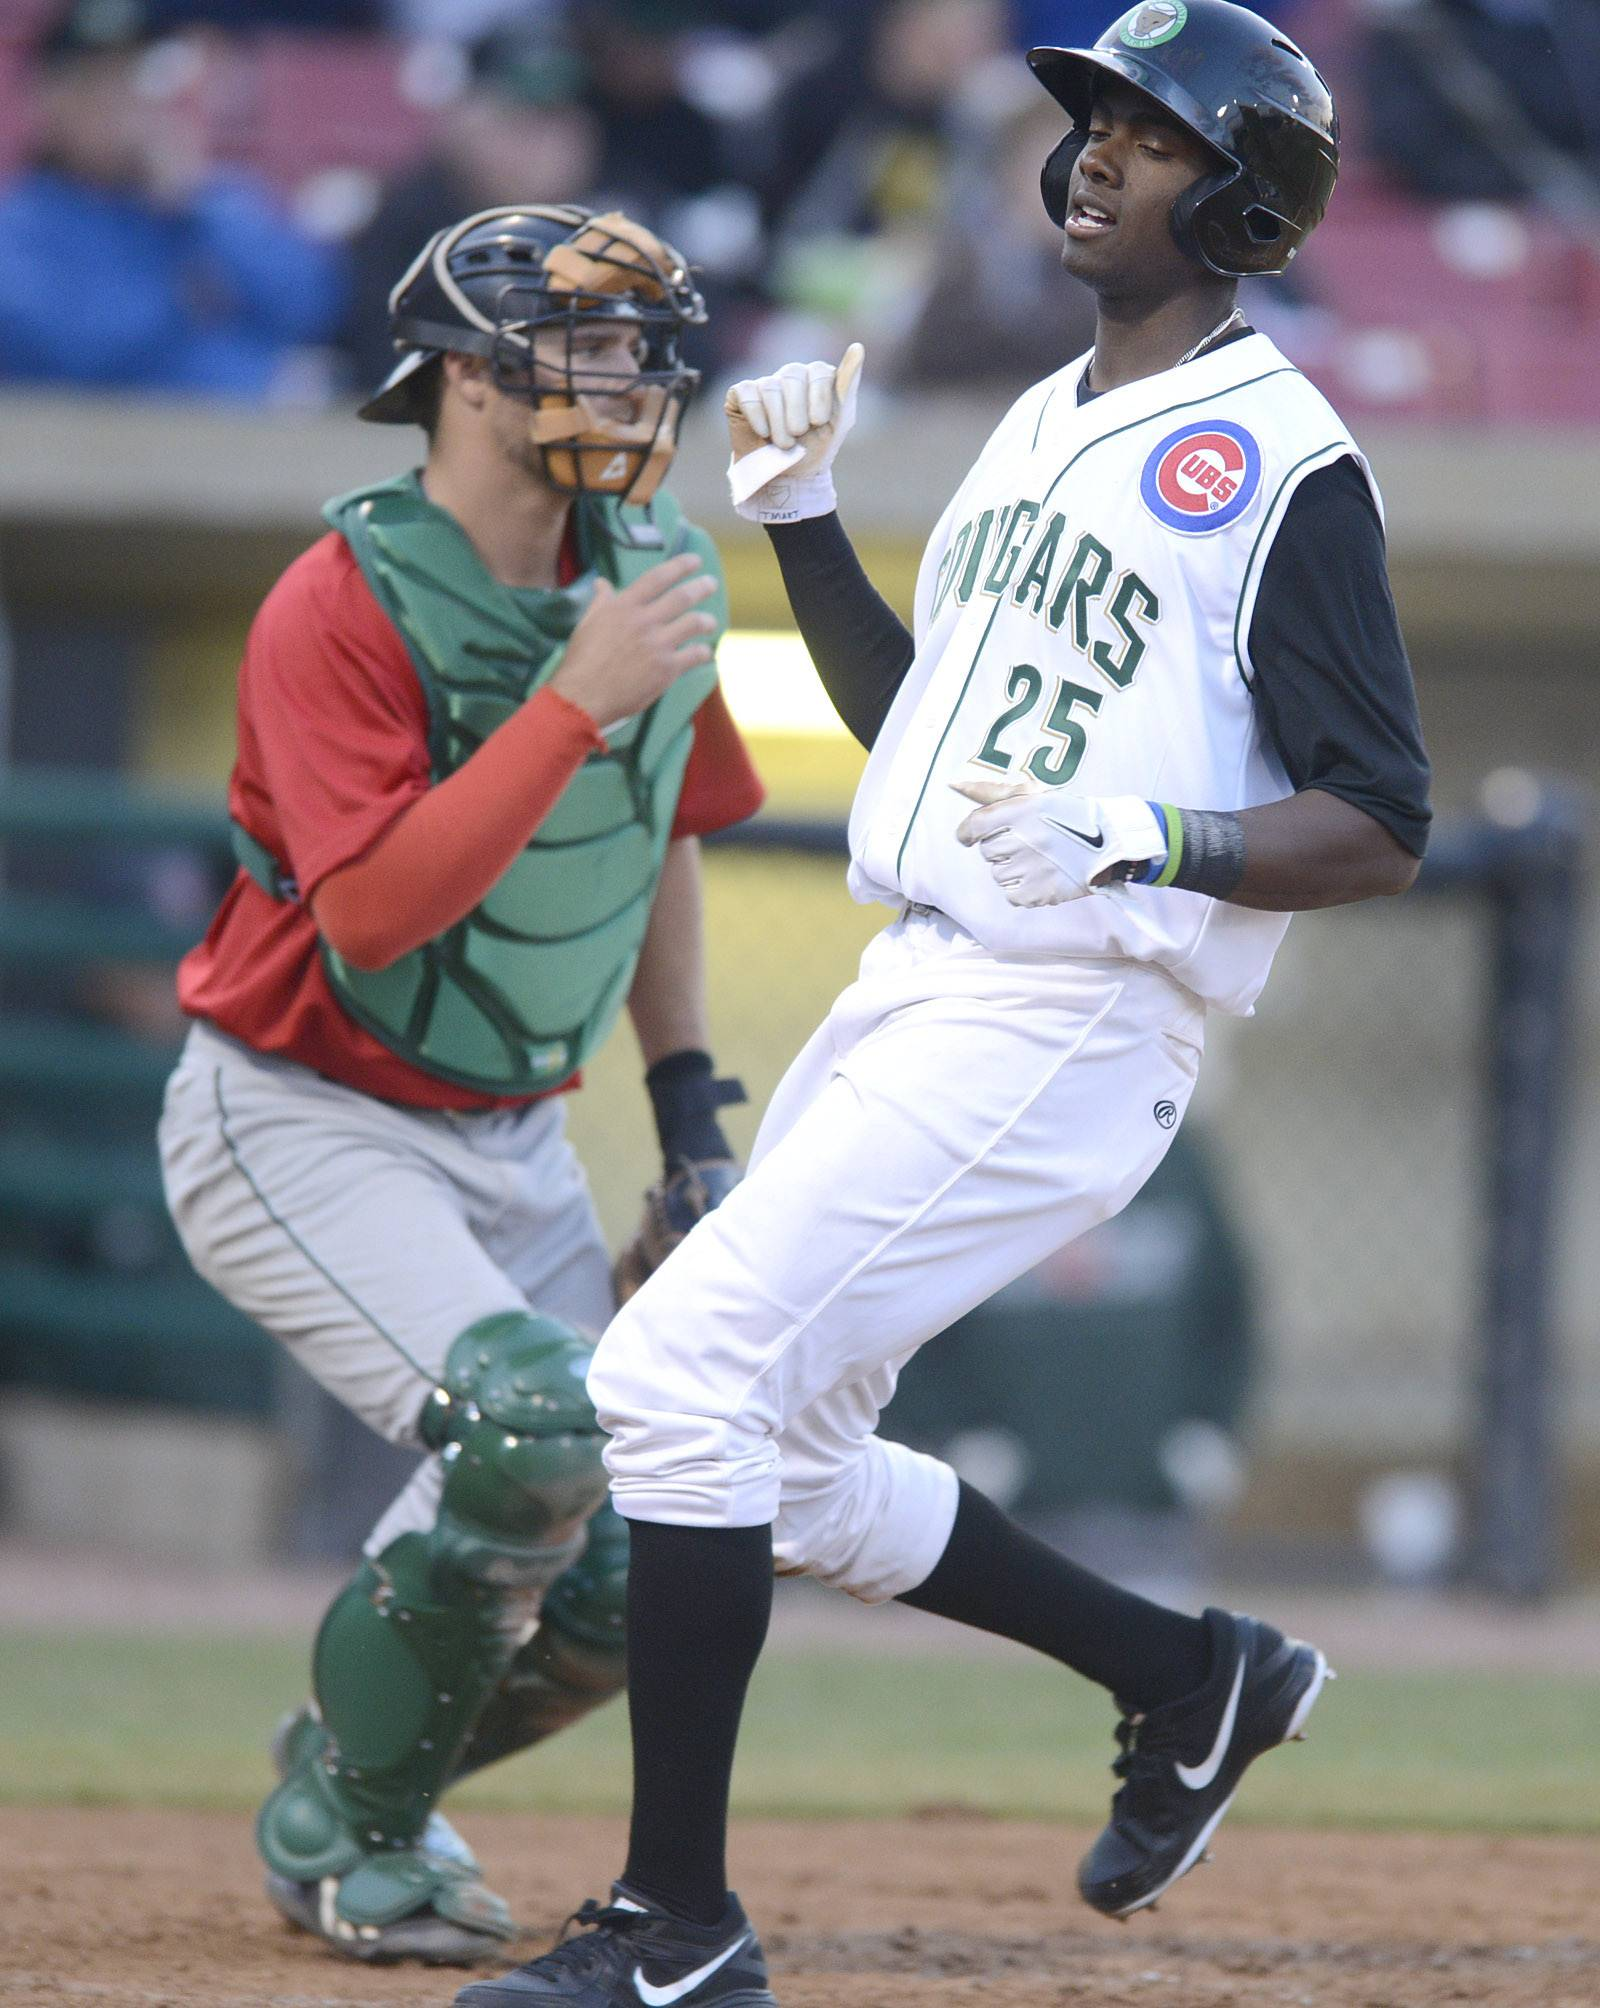 Kane County Cougars' Trey Martin trots past Fort Wayne TinCaps catcher Ryan Miller and touches home plate to score in the second inning.